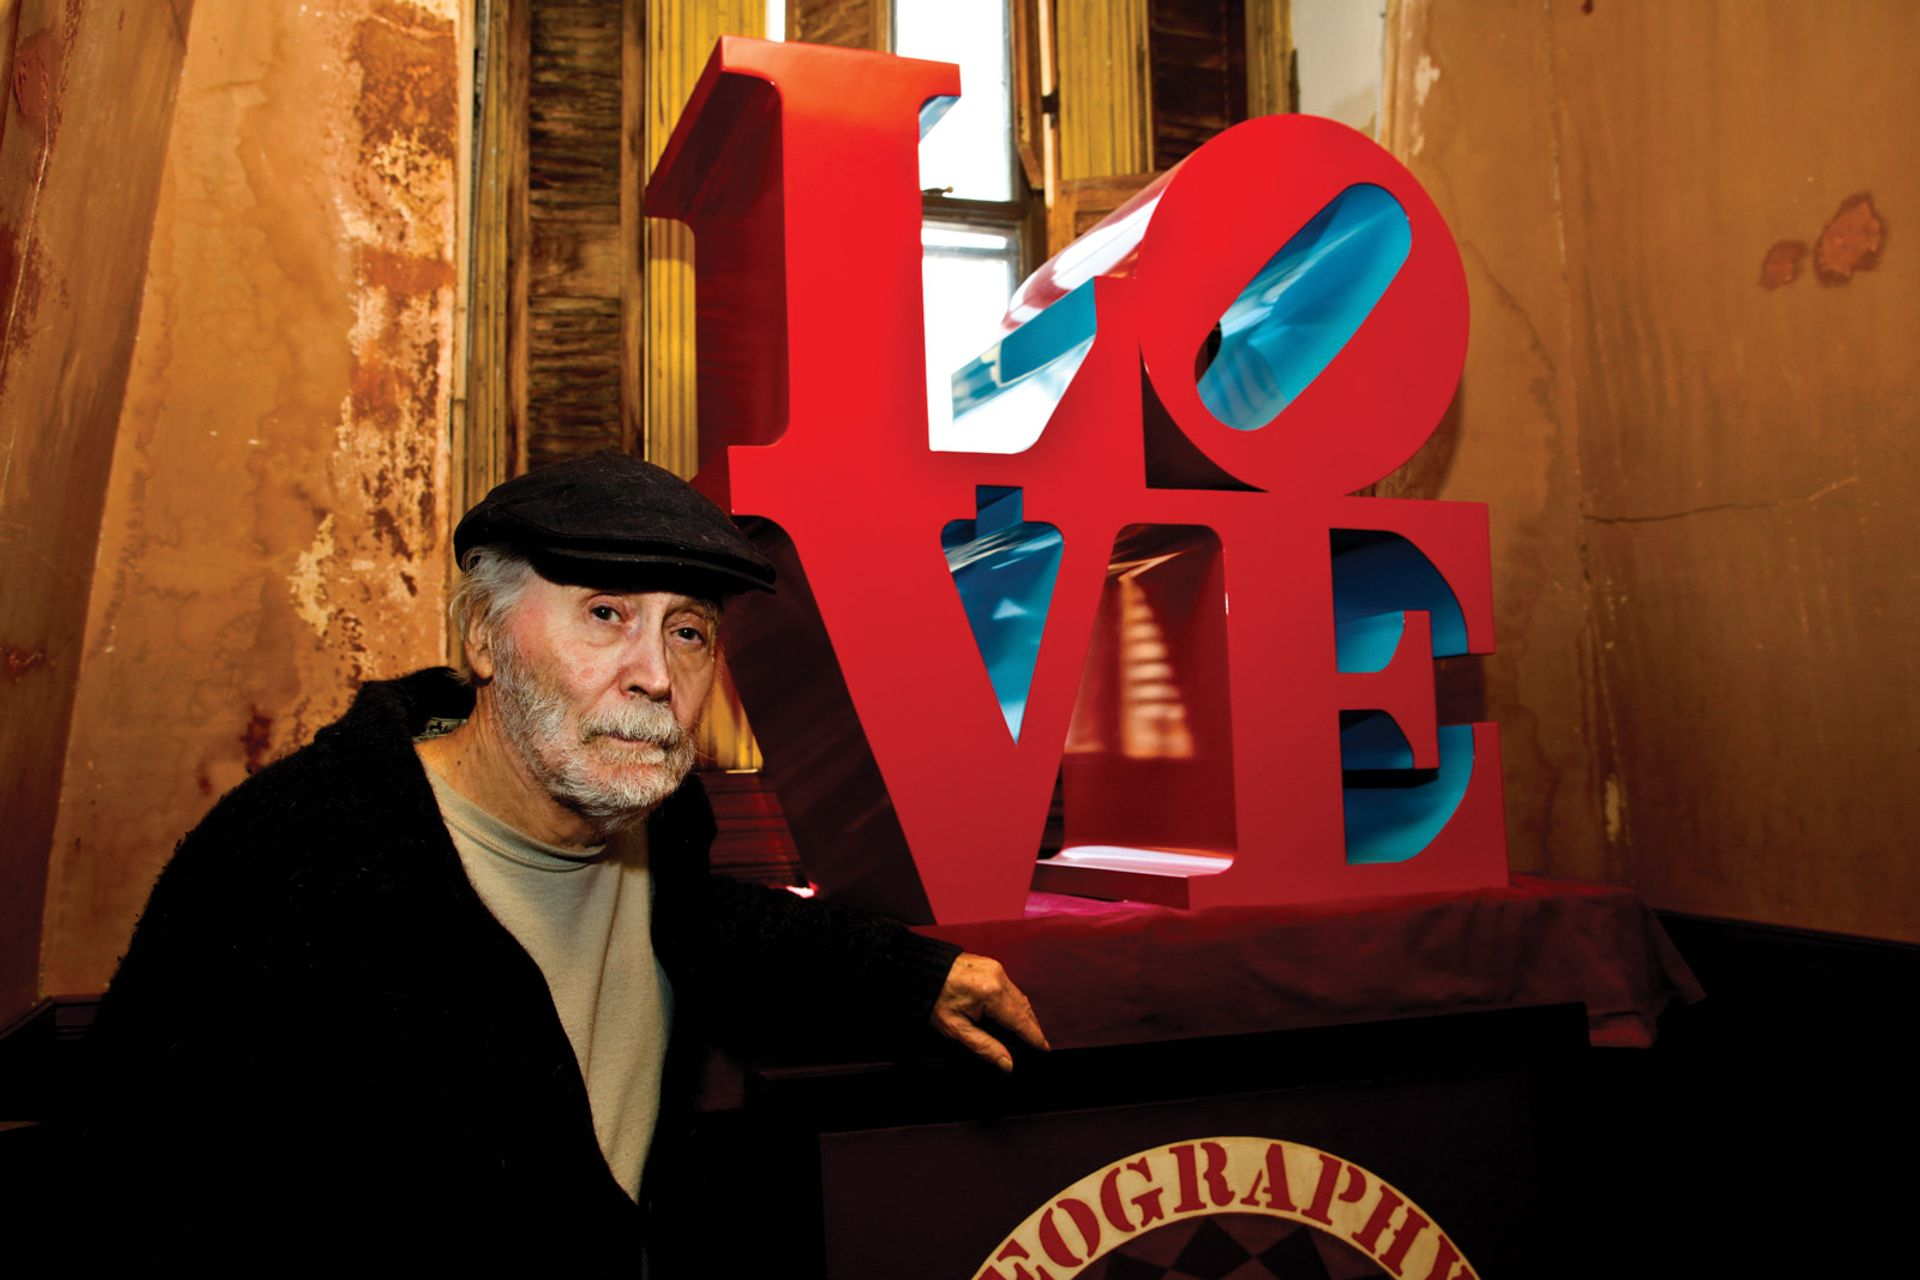 Loving it: Robert Indiana with a version  of his most famous work Courtesy of the Morgan Art Foundation